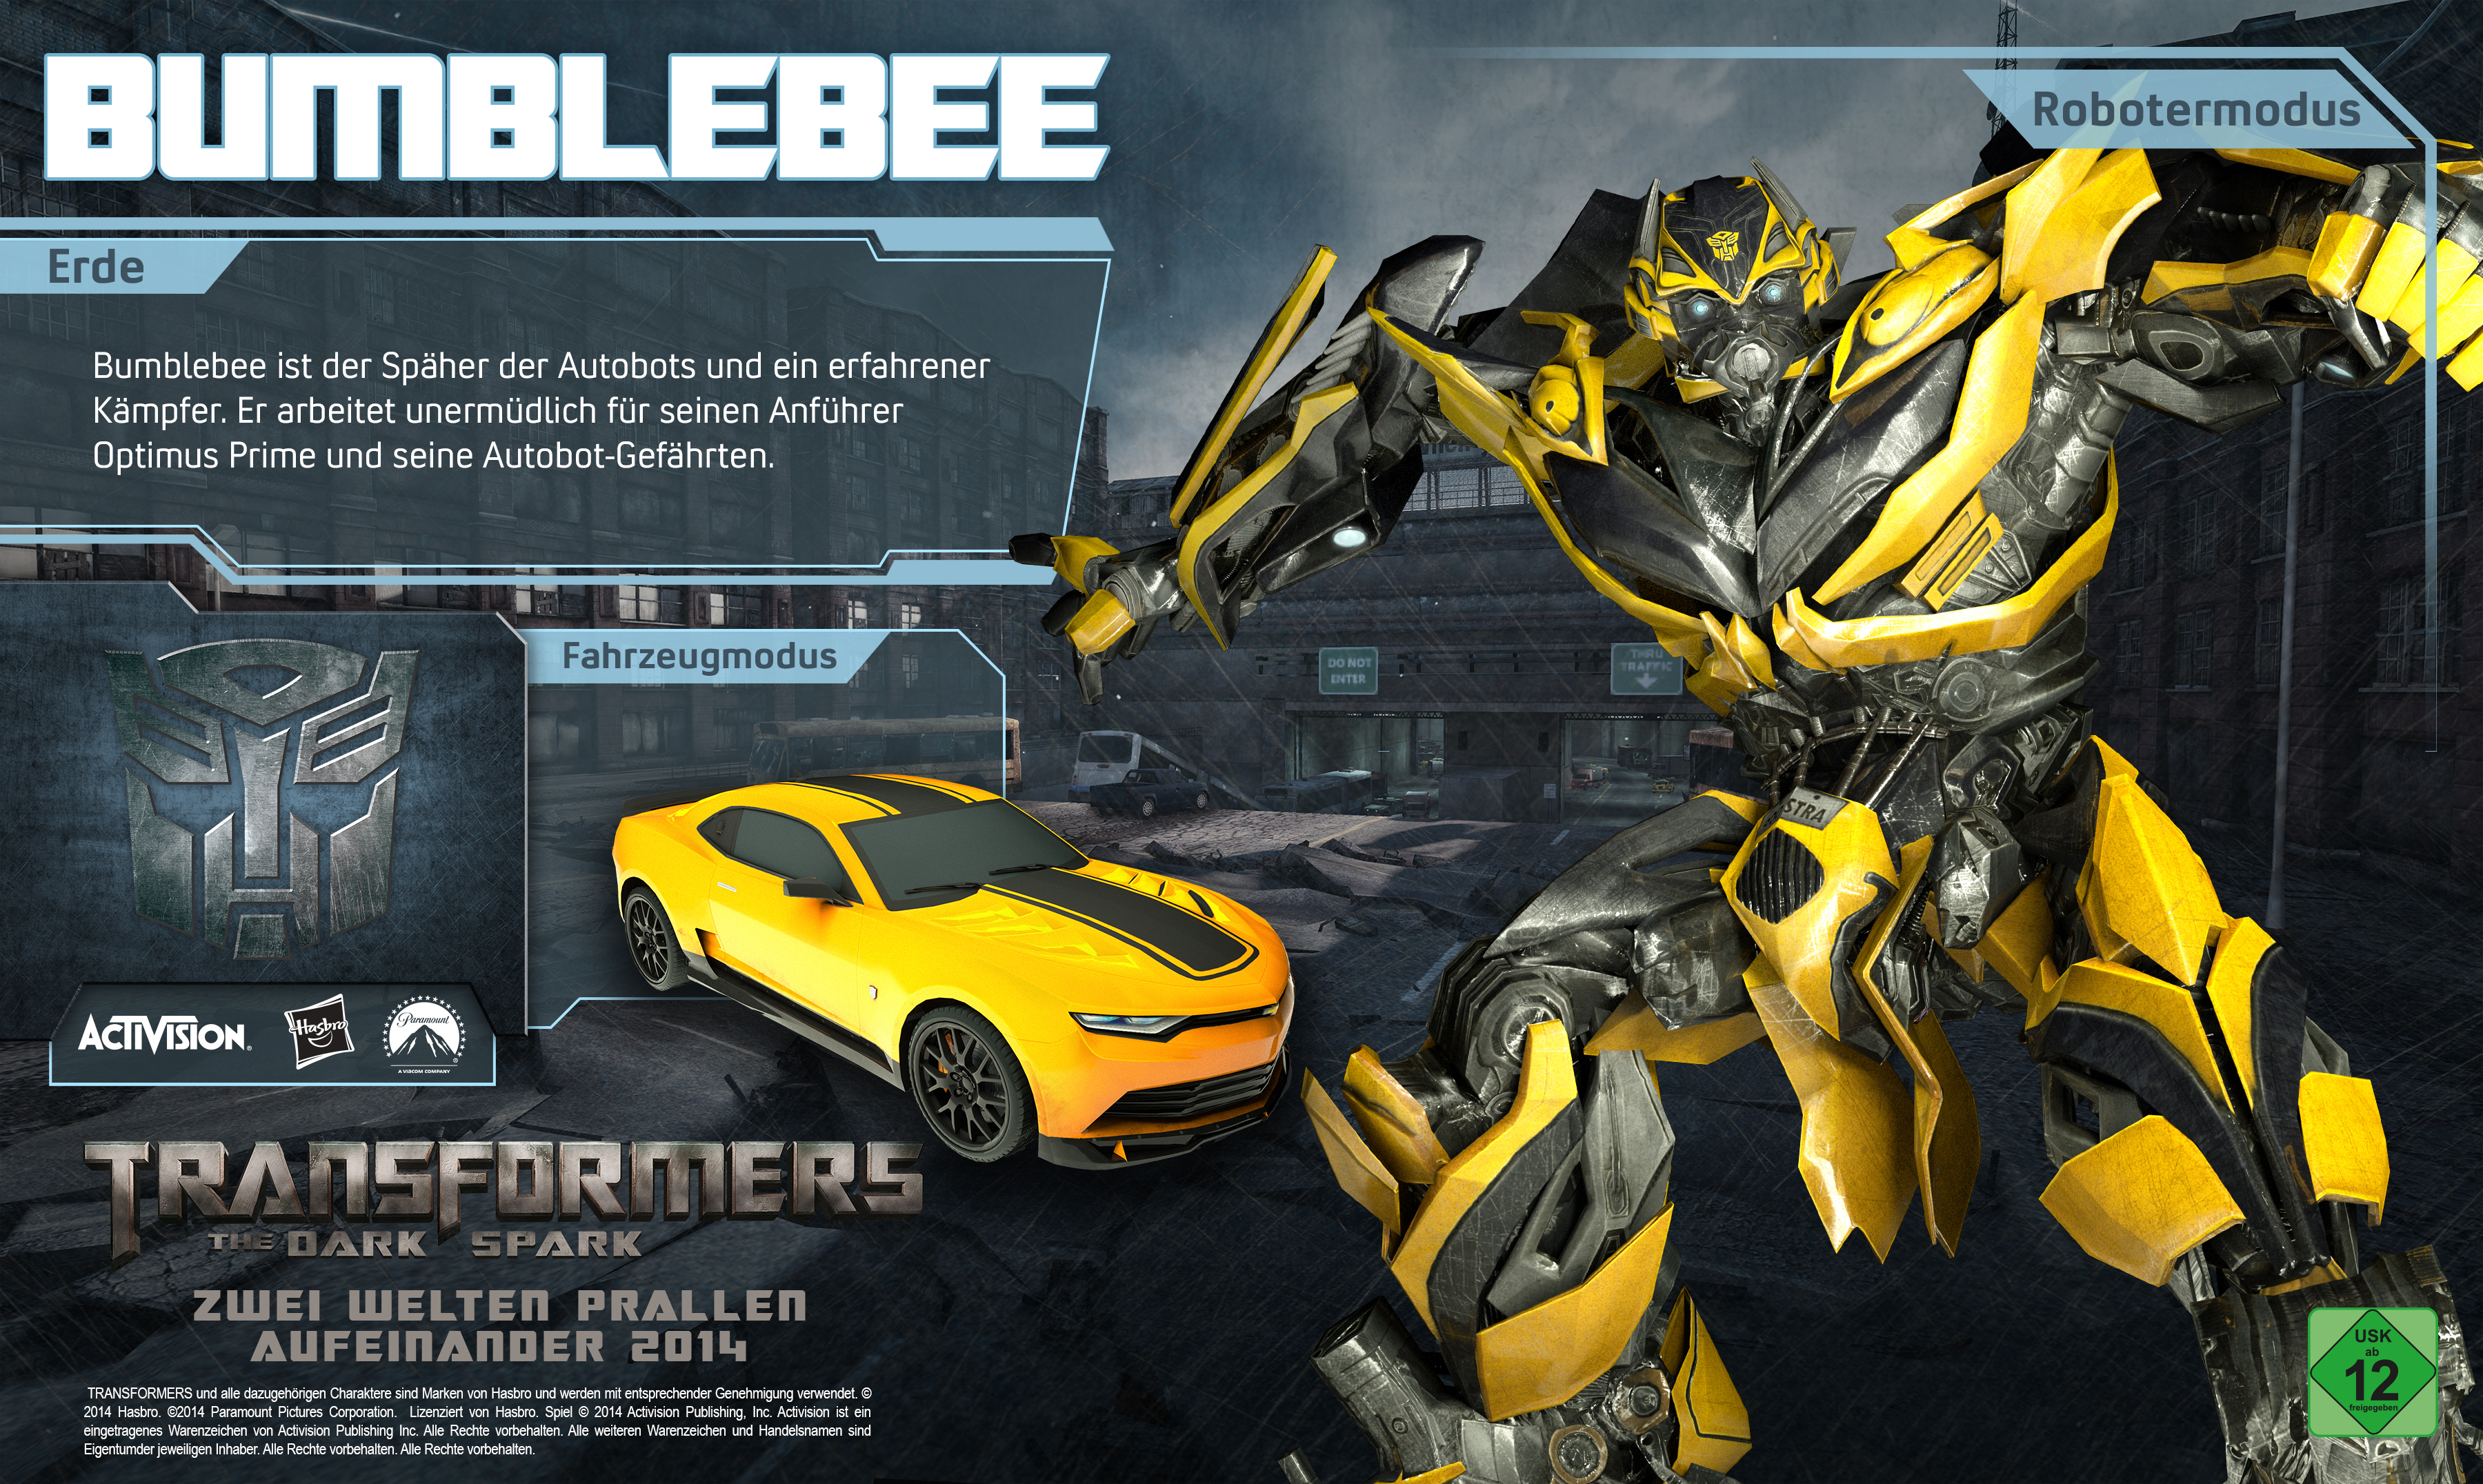 2_TF-RODS_Bio_Earth_Bumblebee_DE